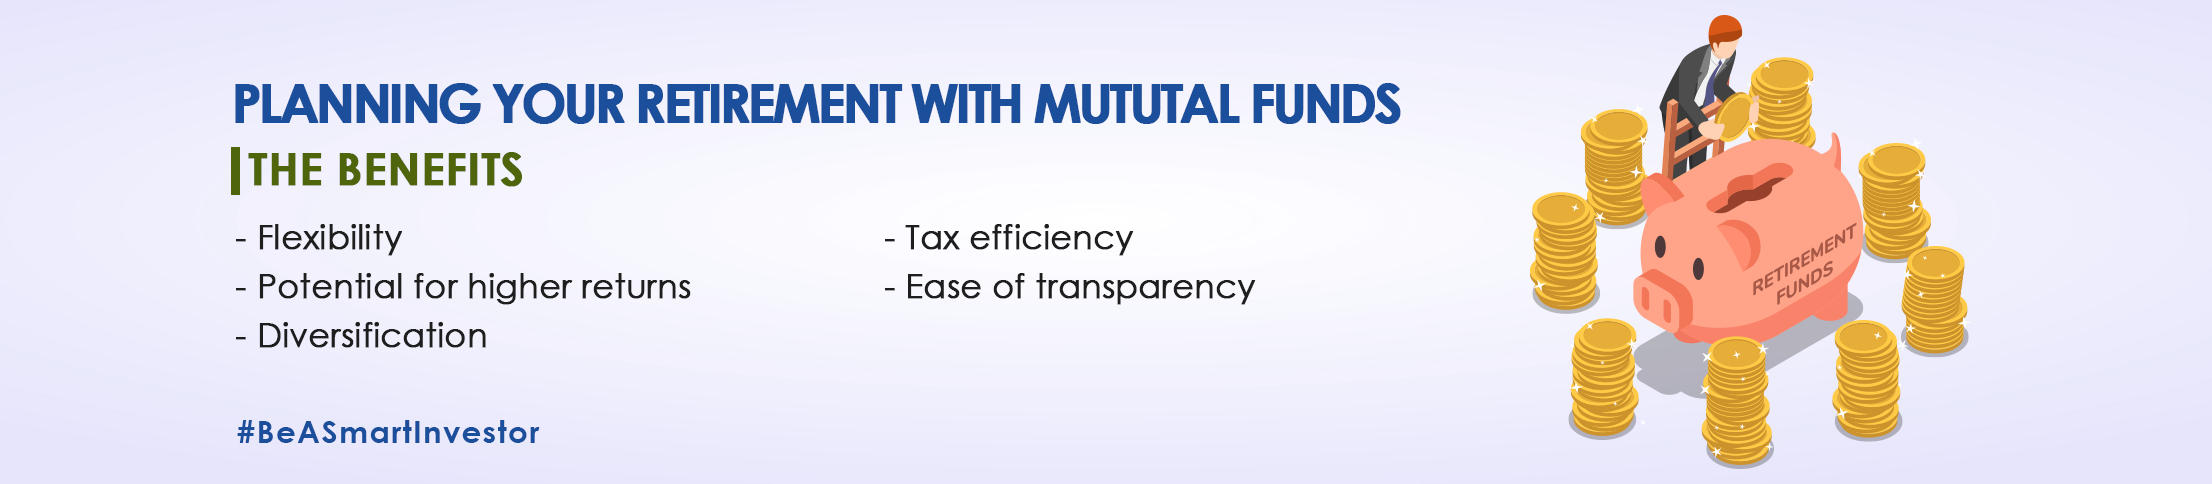 Mutual Funds How to plan your retirement